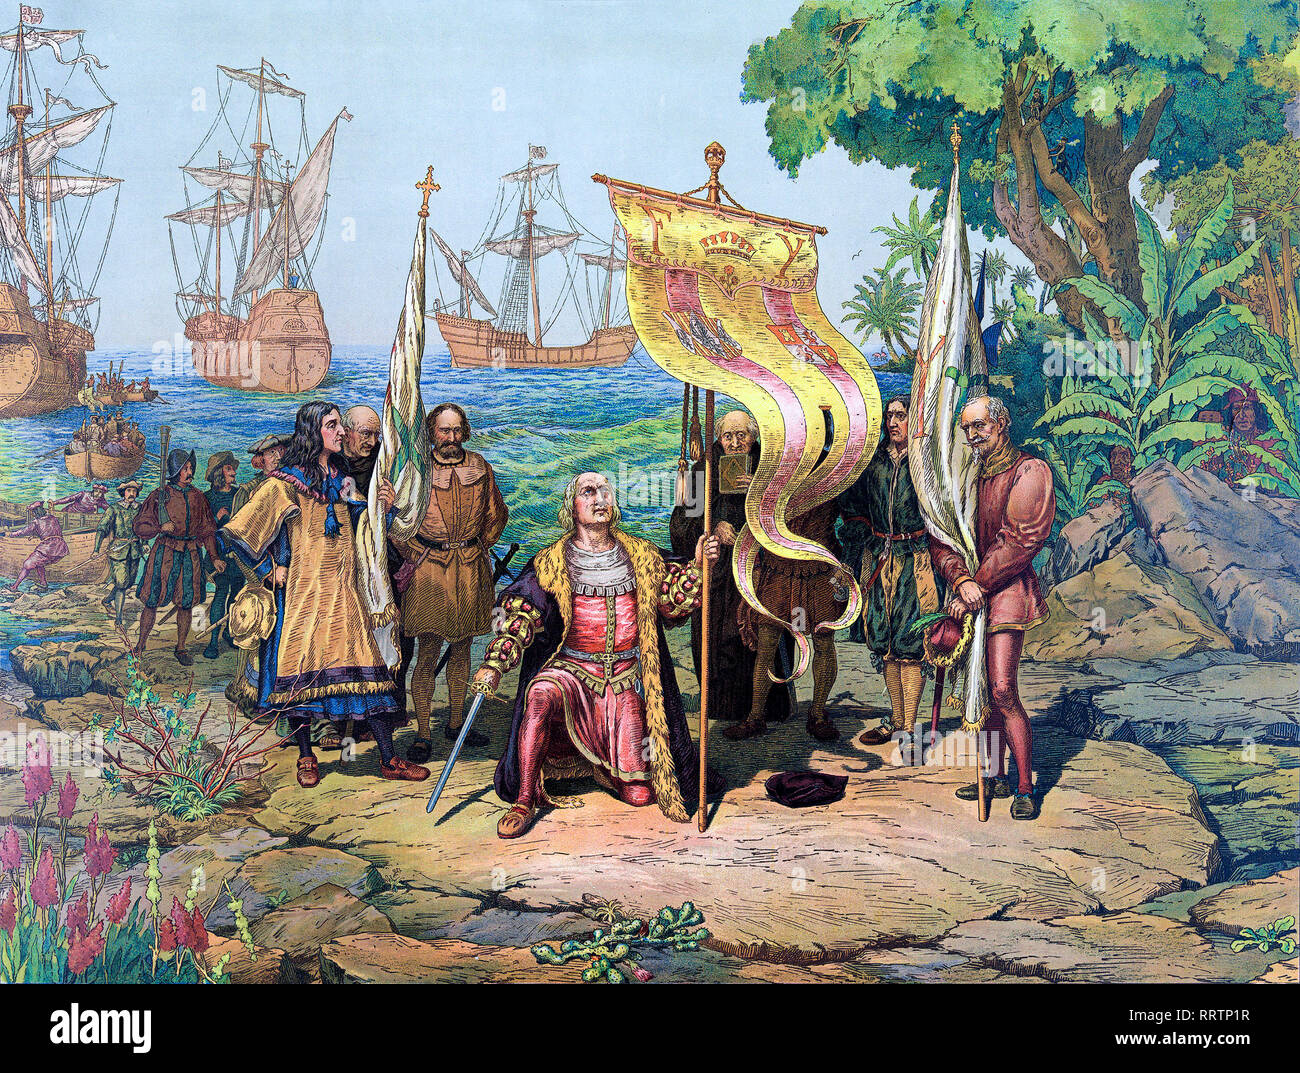 Christoper Columbus arrives in America, Prang & Co., Boston, 1893, coloured drawing, print - Stock Image